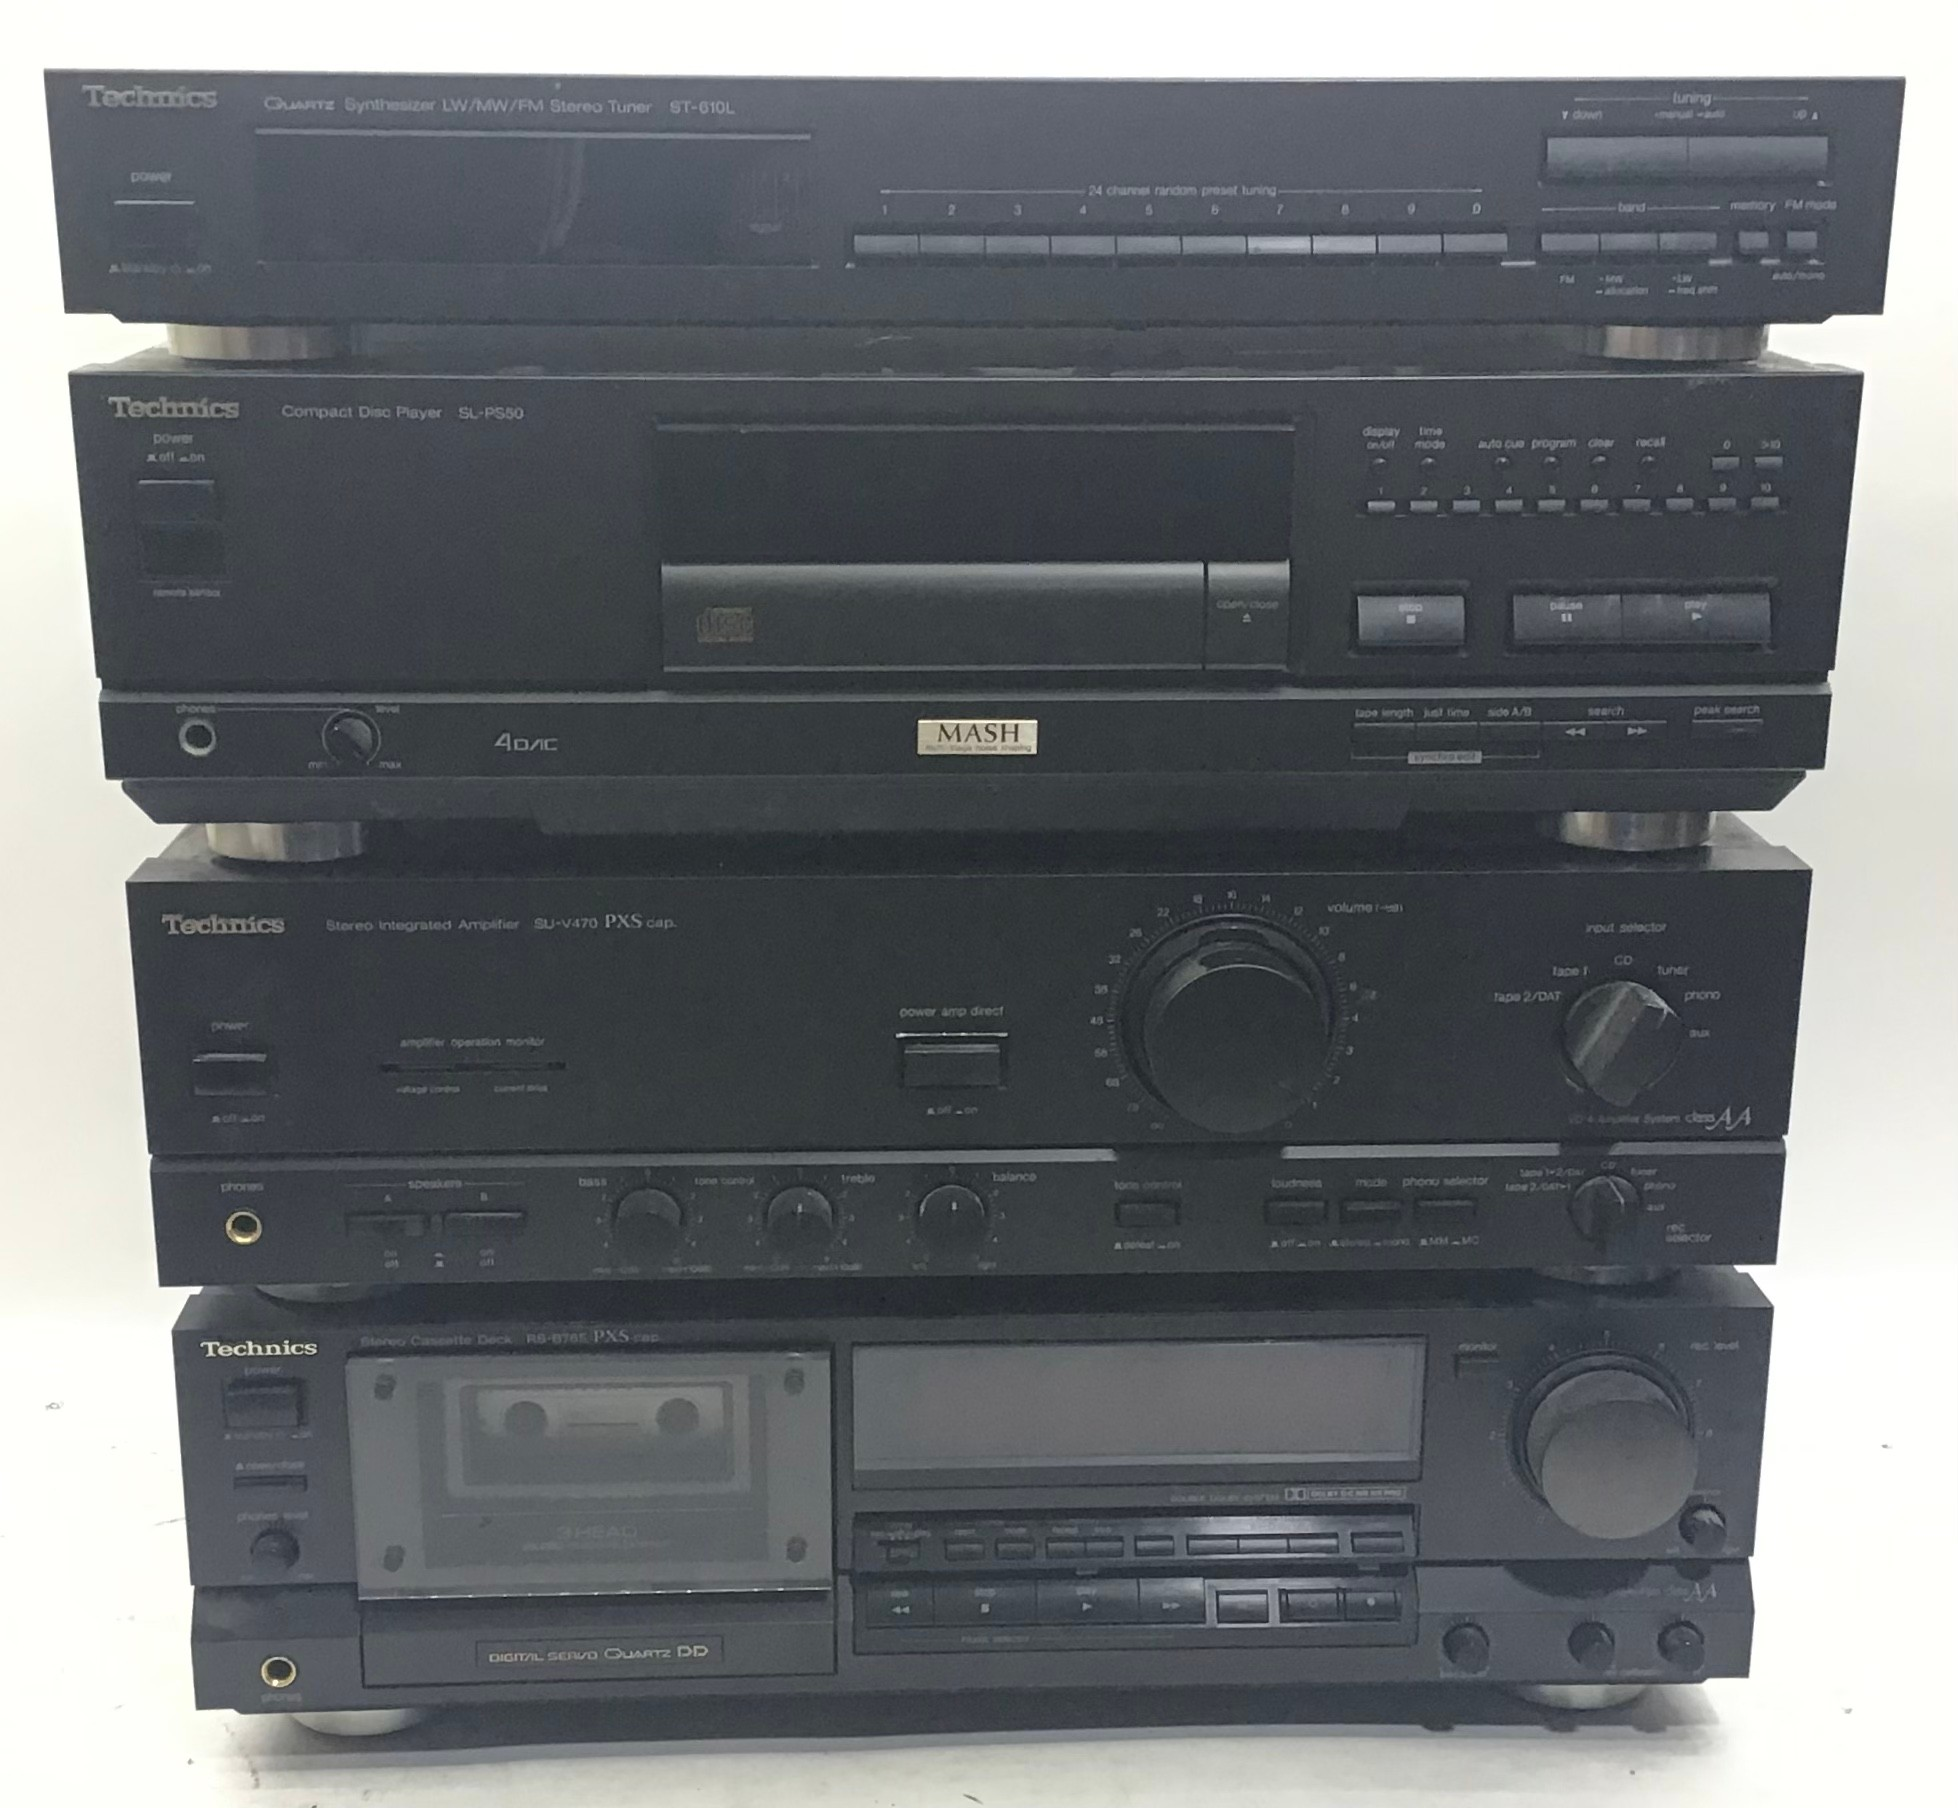 TECHNICS HIFI SEPERATE SYSTEM. To include SUV470 amplifier - Compact disc SLPS50 - Tuner ST610L